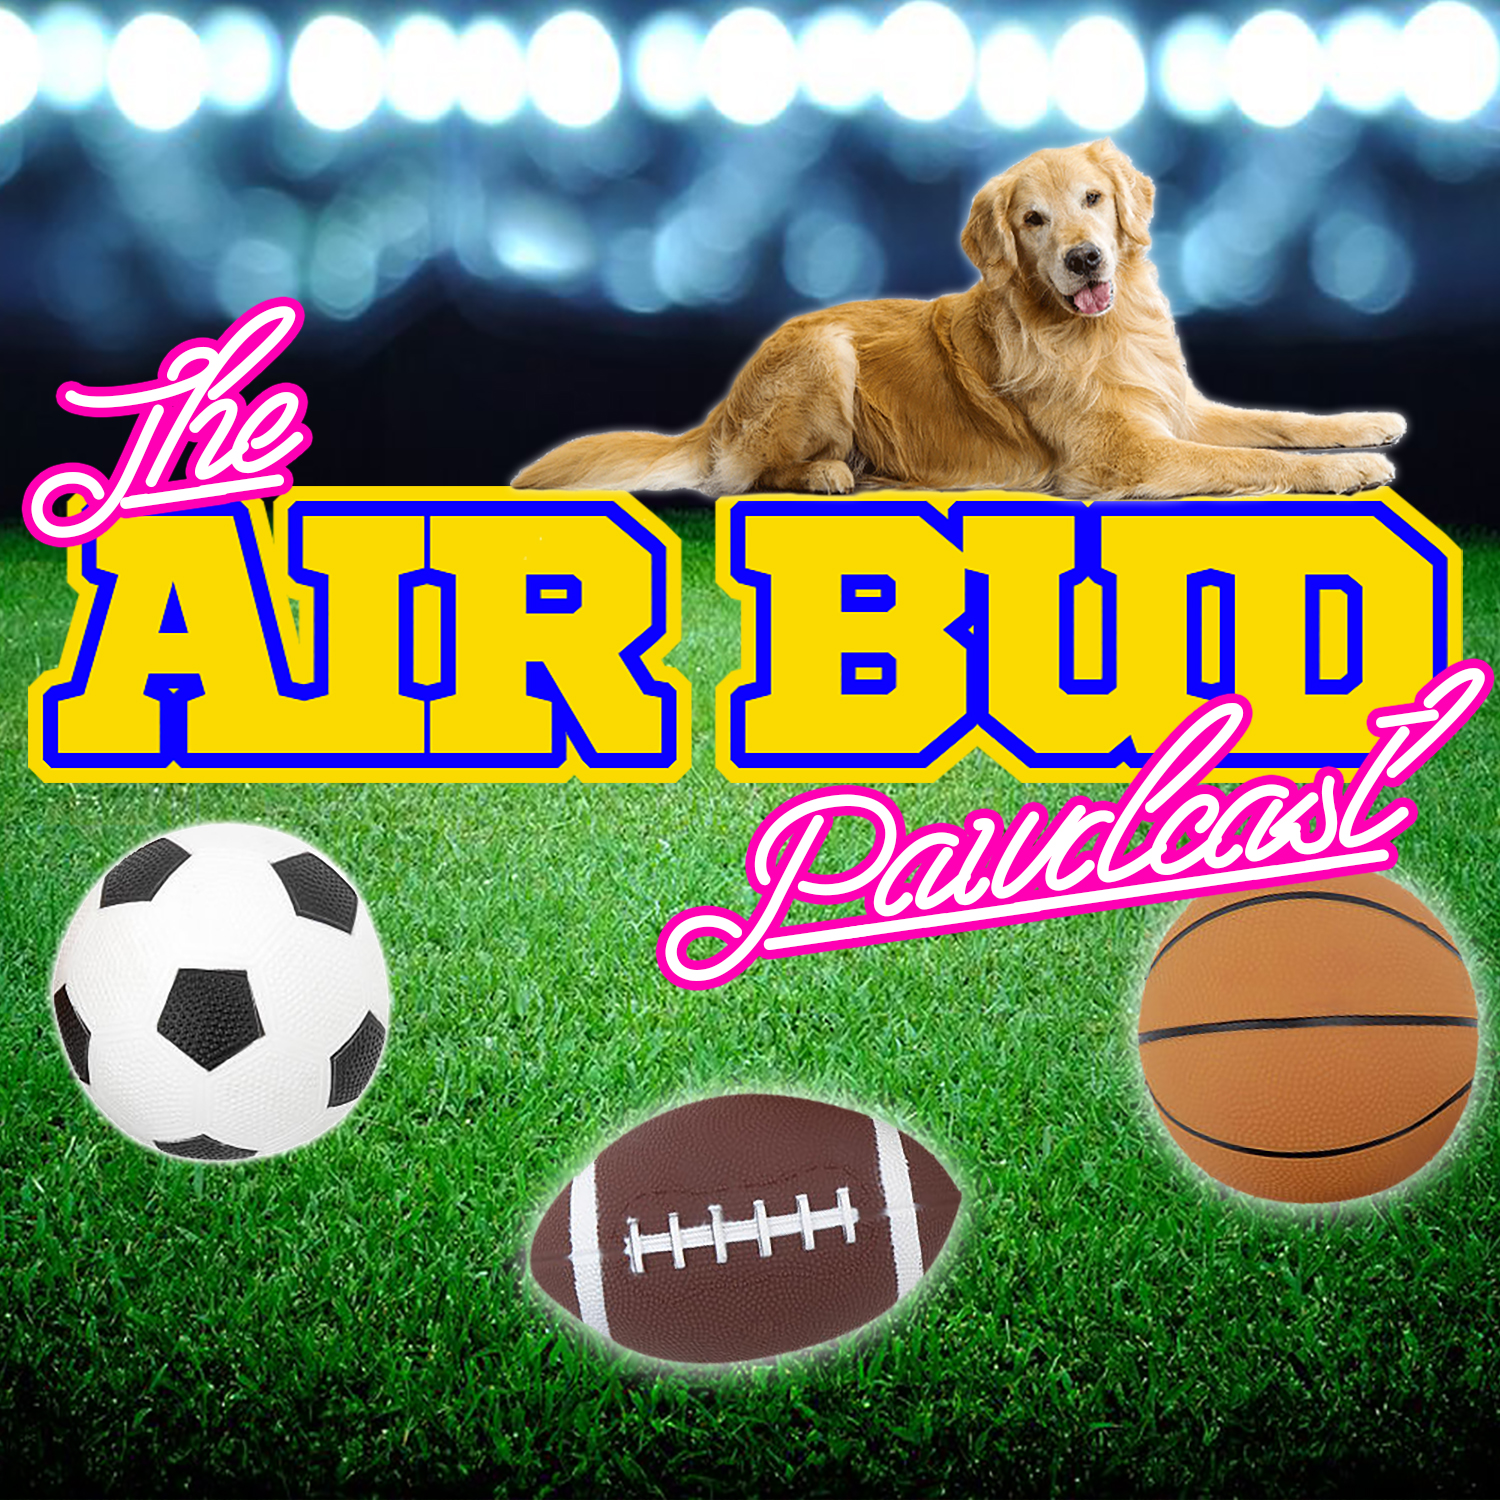 Listen to Leon's Air Bud Pawdcast. Defunct but never forgotten!